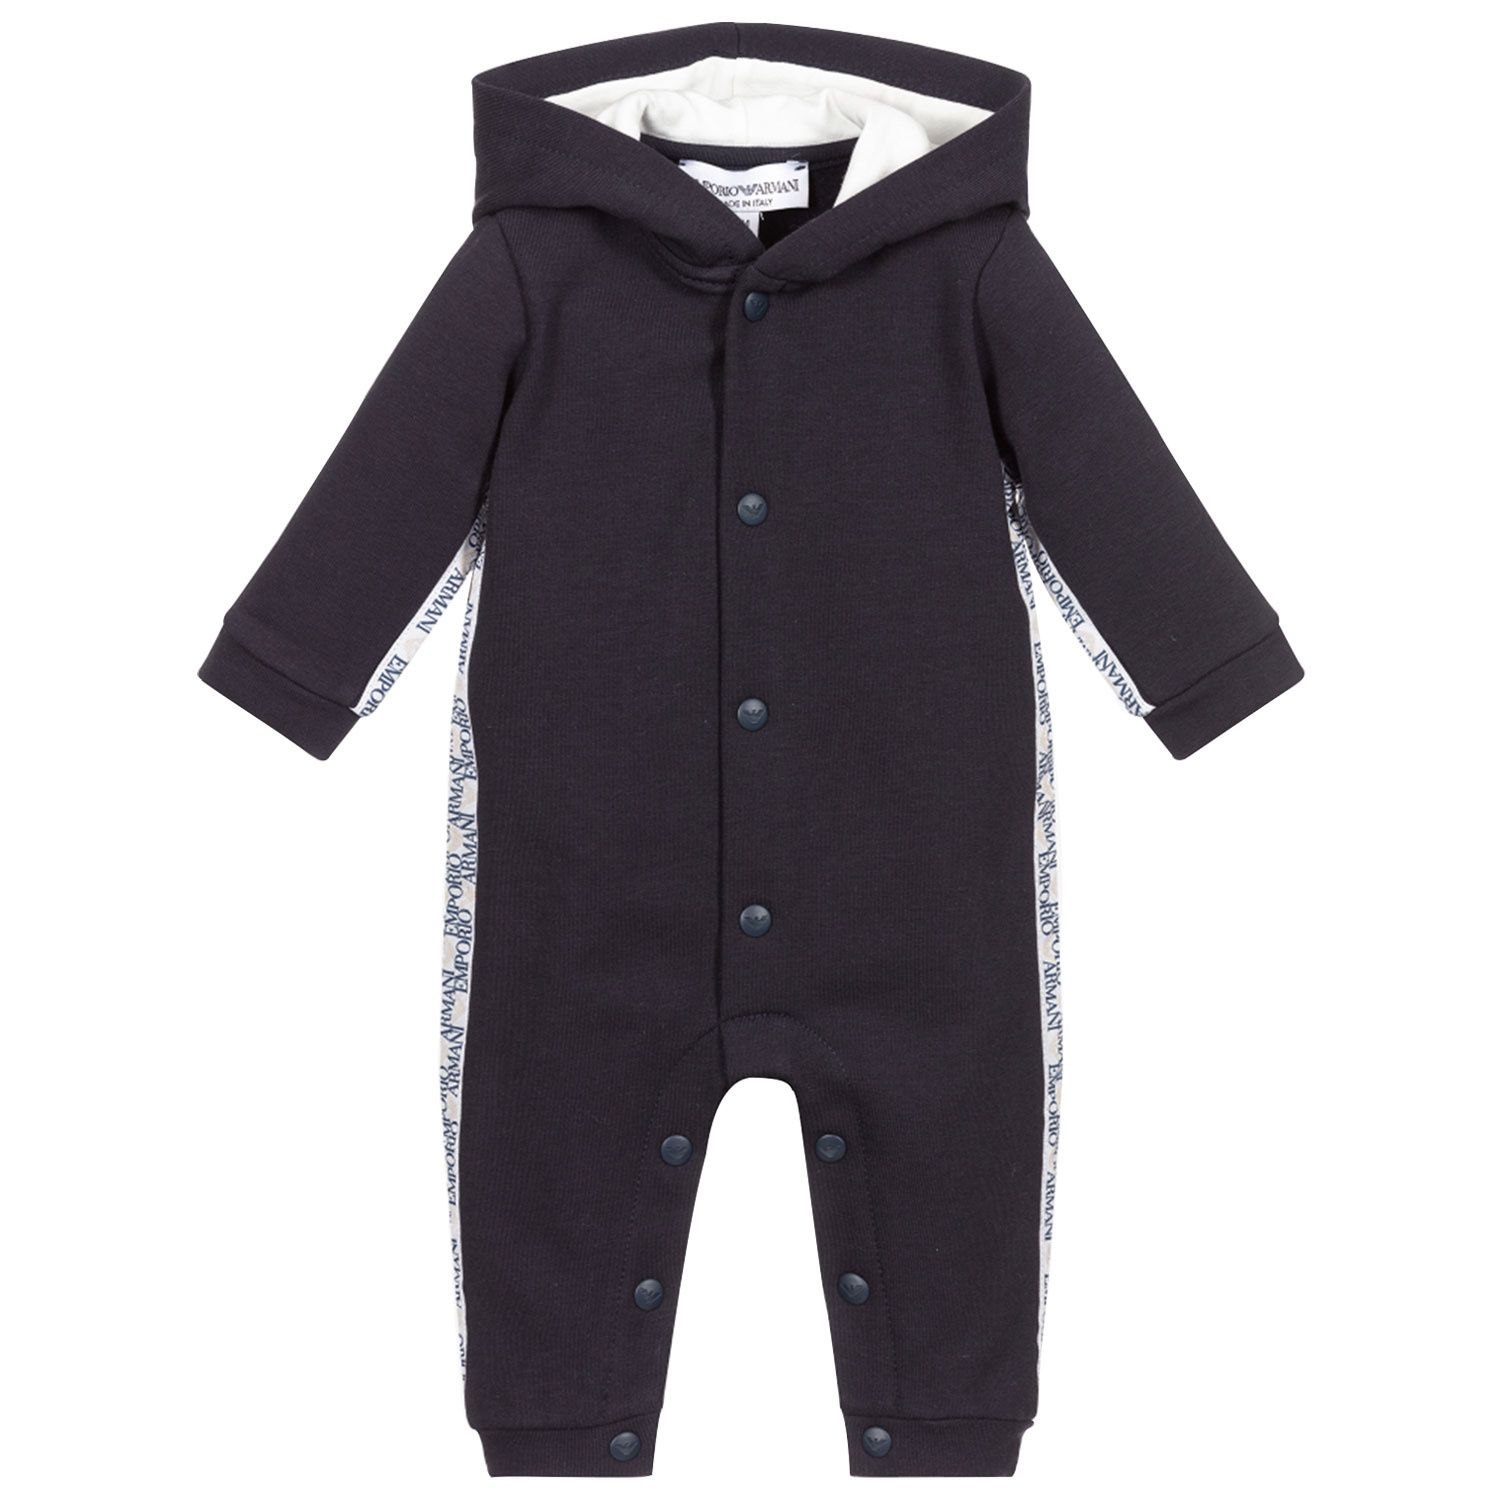 Picture of Armani 6KND22 baby playsuit navy